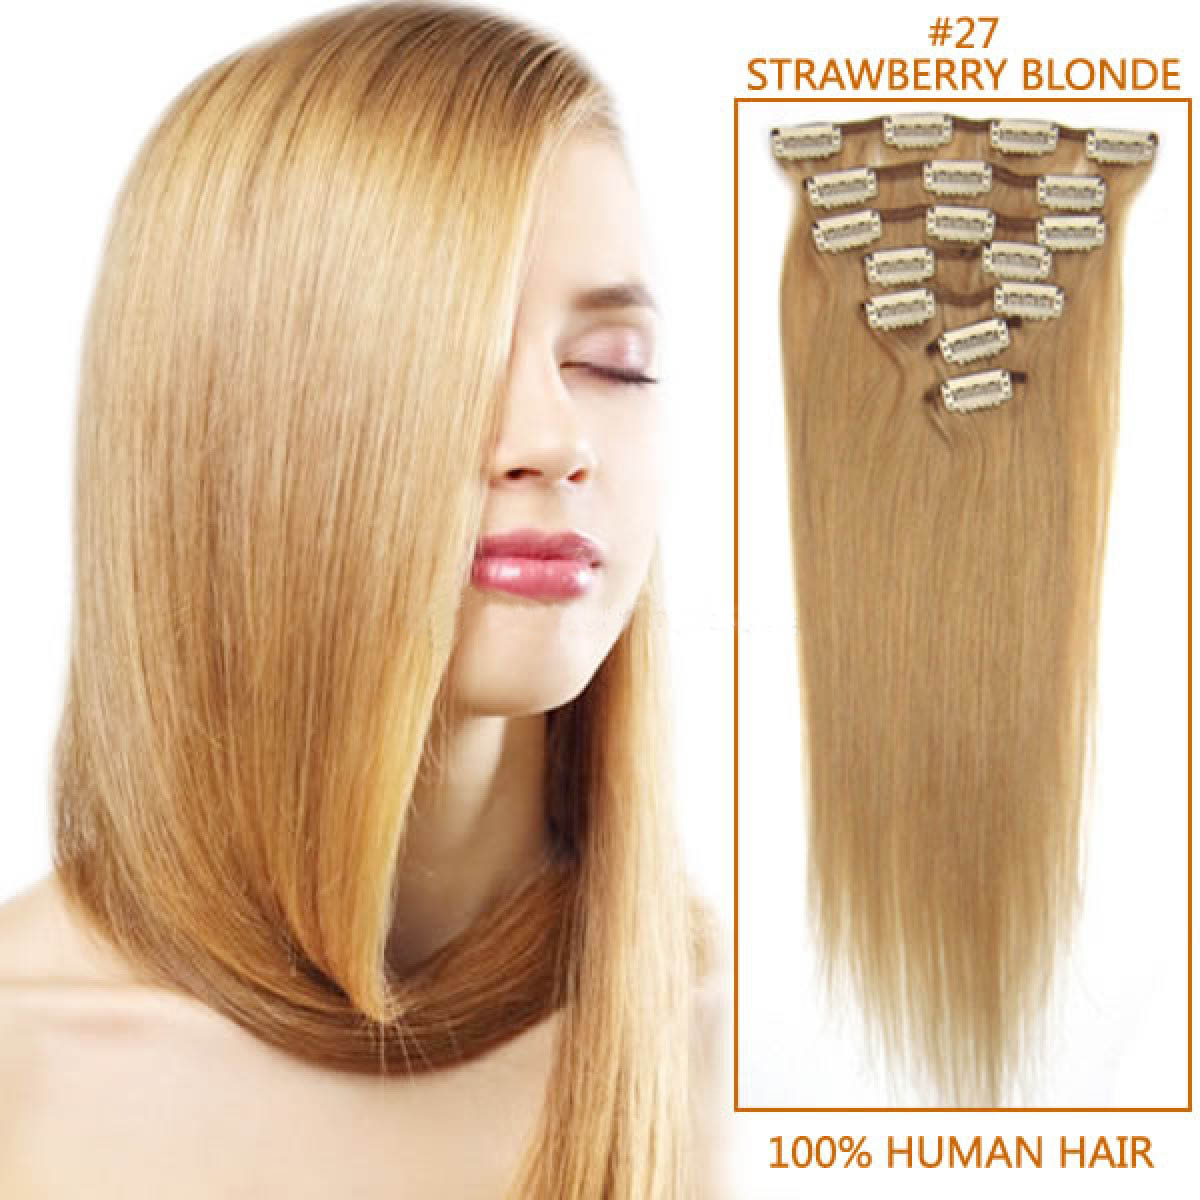 Inch 27 strawberry blonde clip in remy human hair extensions 9pcs 24 inch 27 strawberry blonde clip in remy human hair extensions 9pcs pmusecretfo Image collections